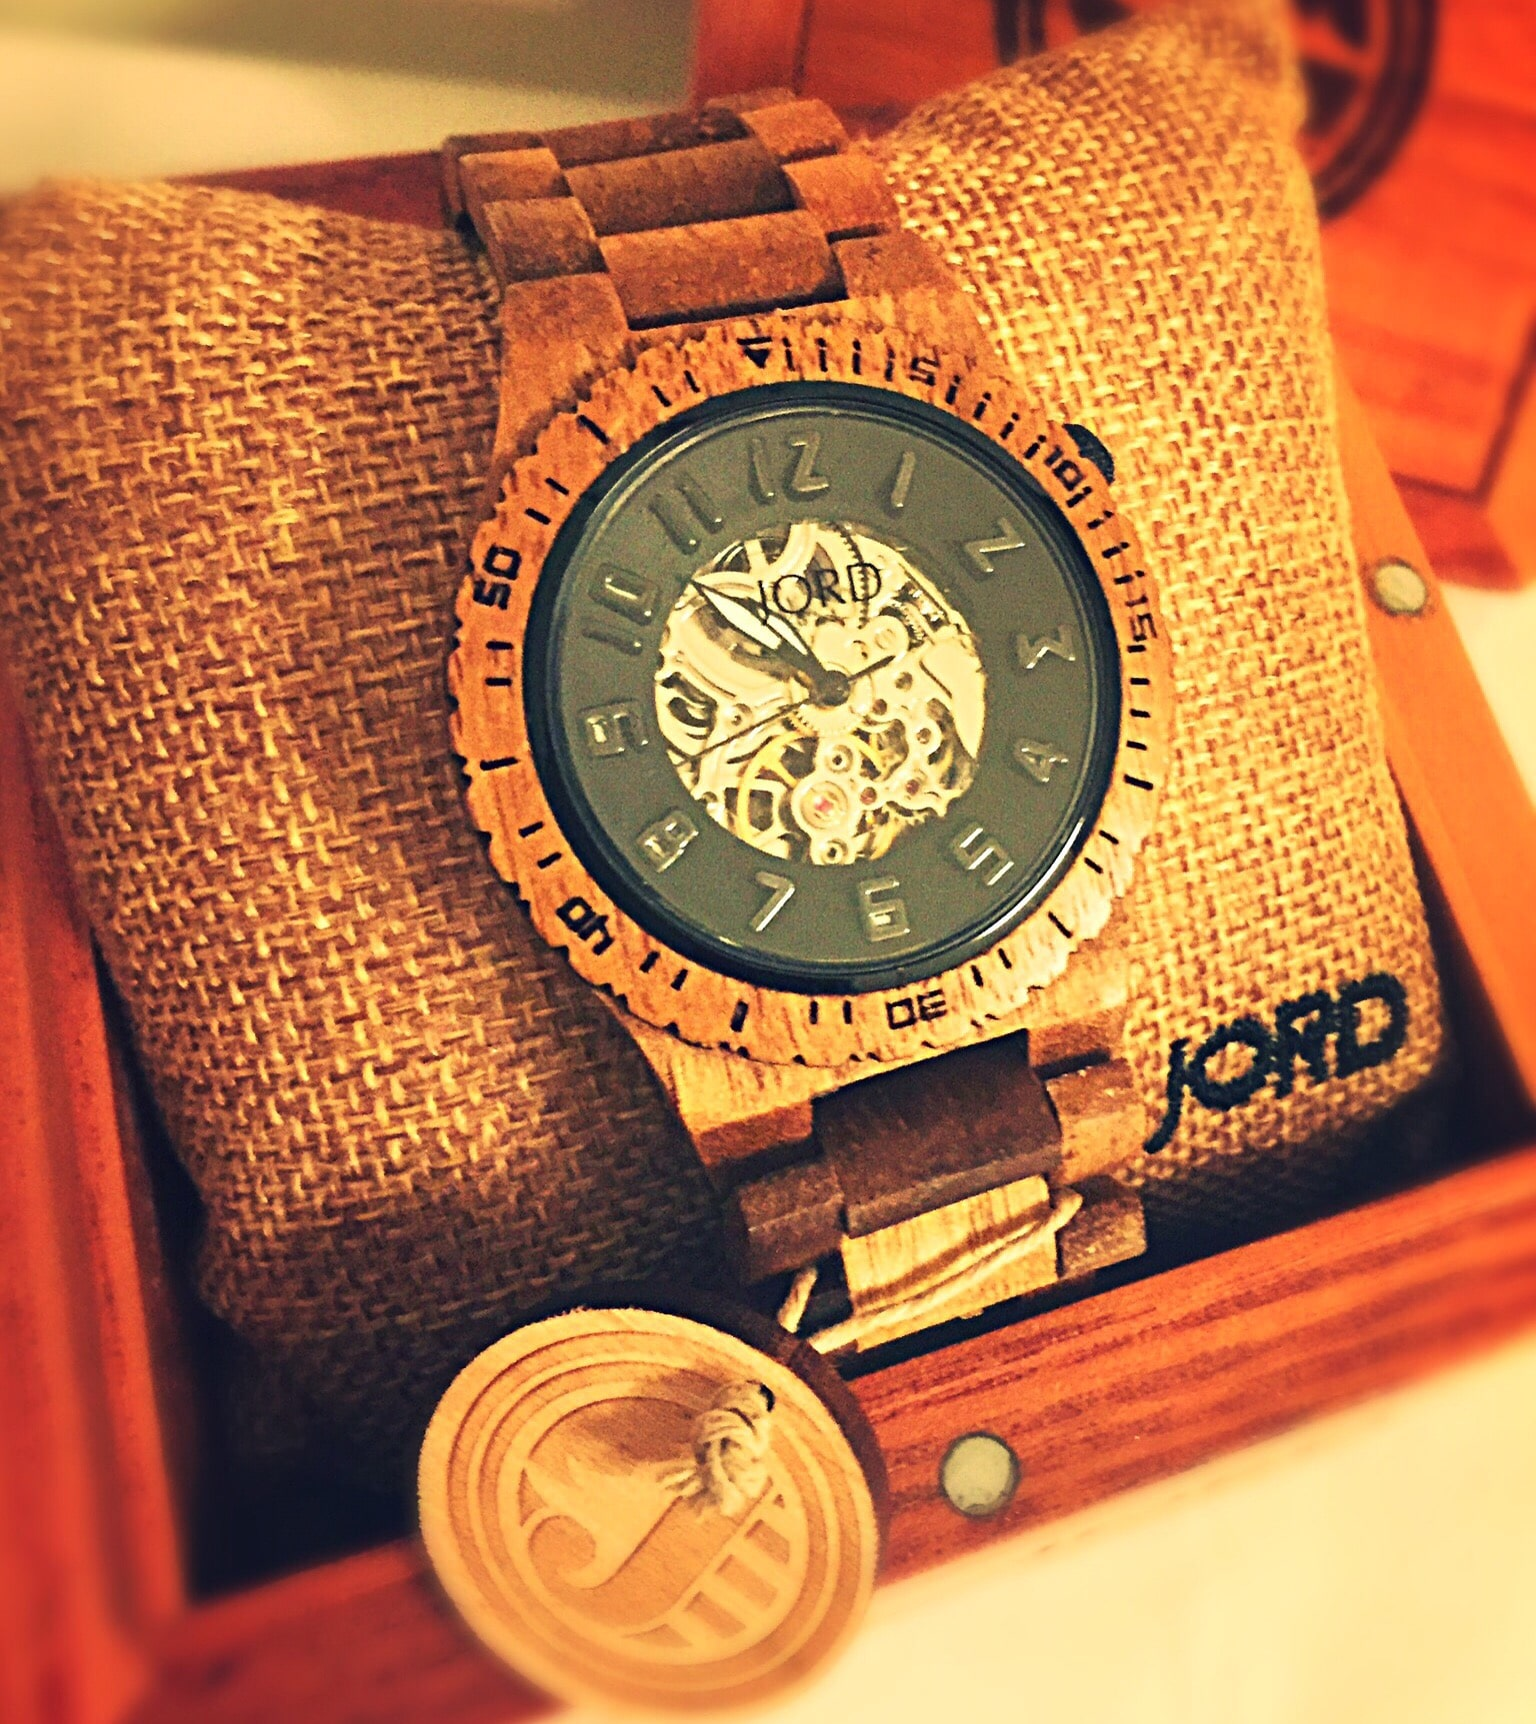 Jord wood watches. Wood watches for men and women